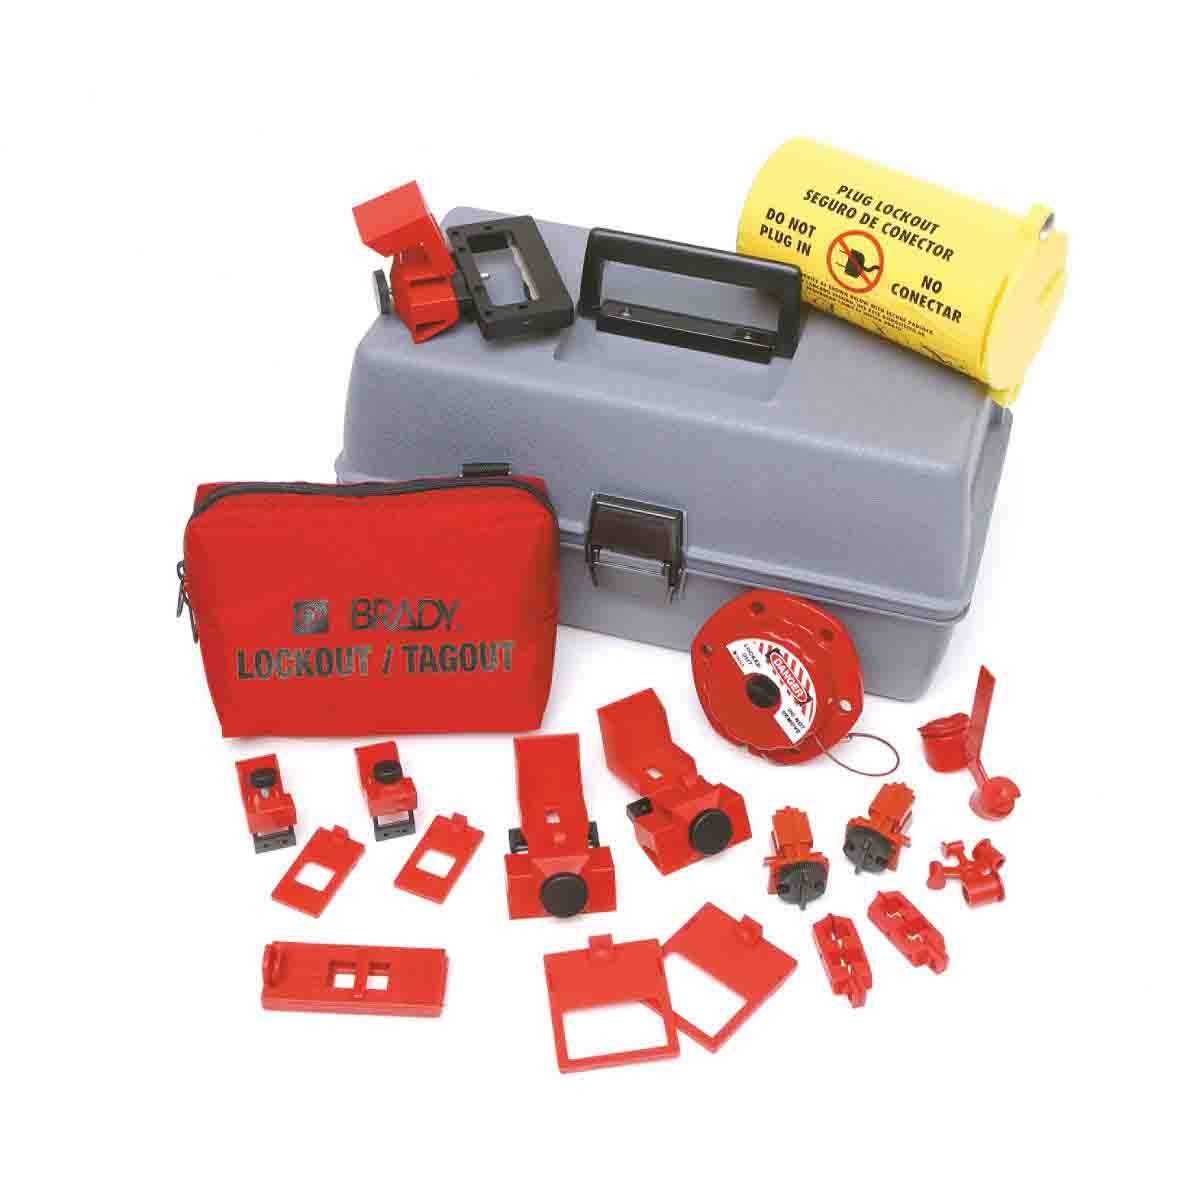 Brady® 99310 Electrical Risk Portable Lockout Kit, Filled, 19 Pieces, 7-1/2 in H x 14 in W x 8 in D